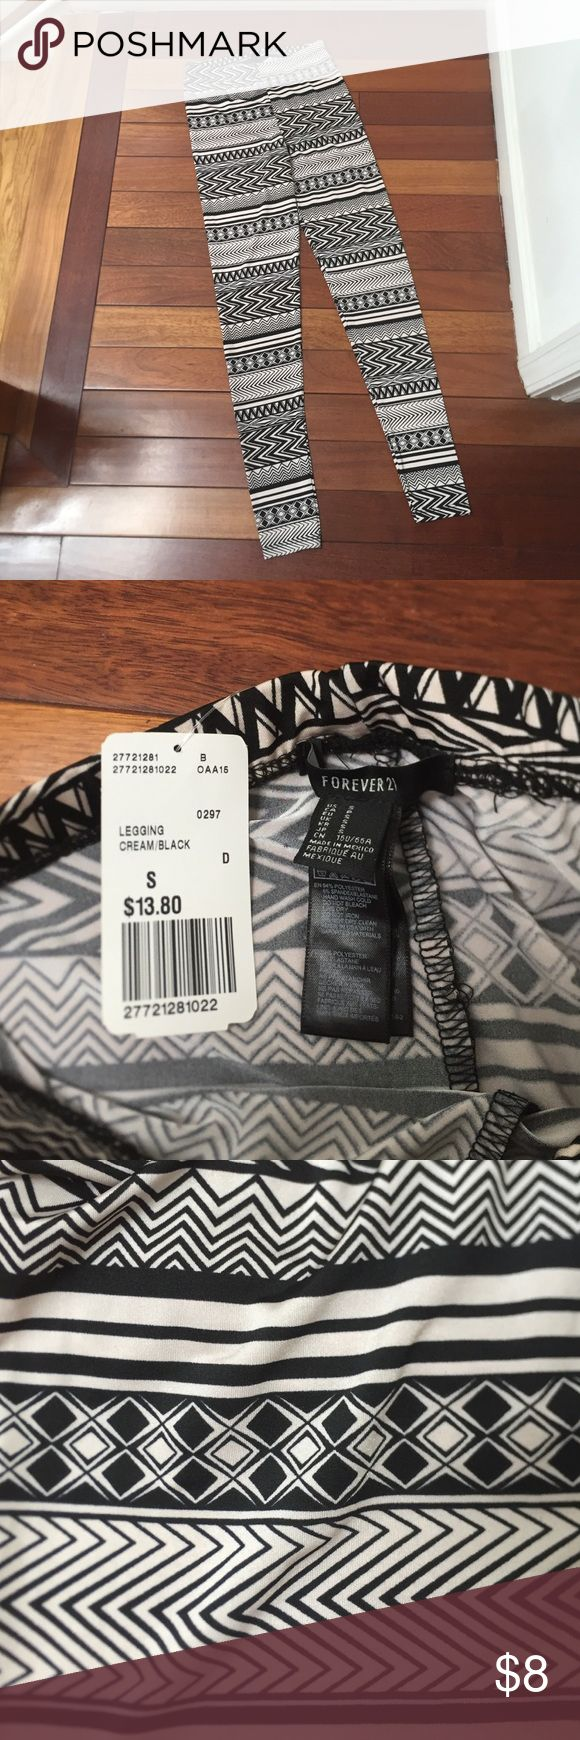 NWT Forever 21 Slinky Tribal Leggings Sz S NWT Forever 21 Slinky Tribal Leggings Sz S. Never worn - really smooth slinky material. Black with off white color. I'm really into printed leggings (I'm also selling a similar pair in cotton material from PINK VS) and have many pairs of them so I'm selling a few I've never worn like this pair or ones I don't wear as much anymore (to make room for more of course!!!) Forever 21 Pants Leggings